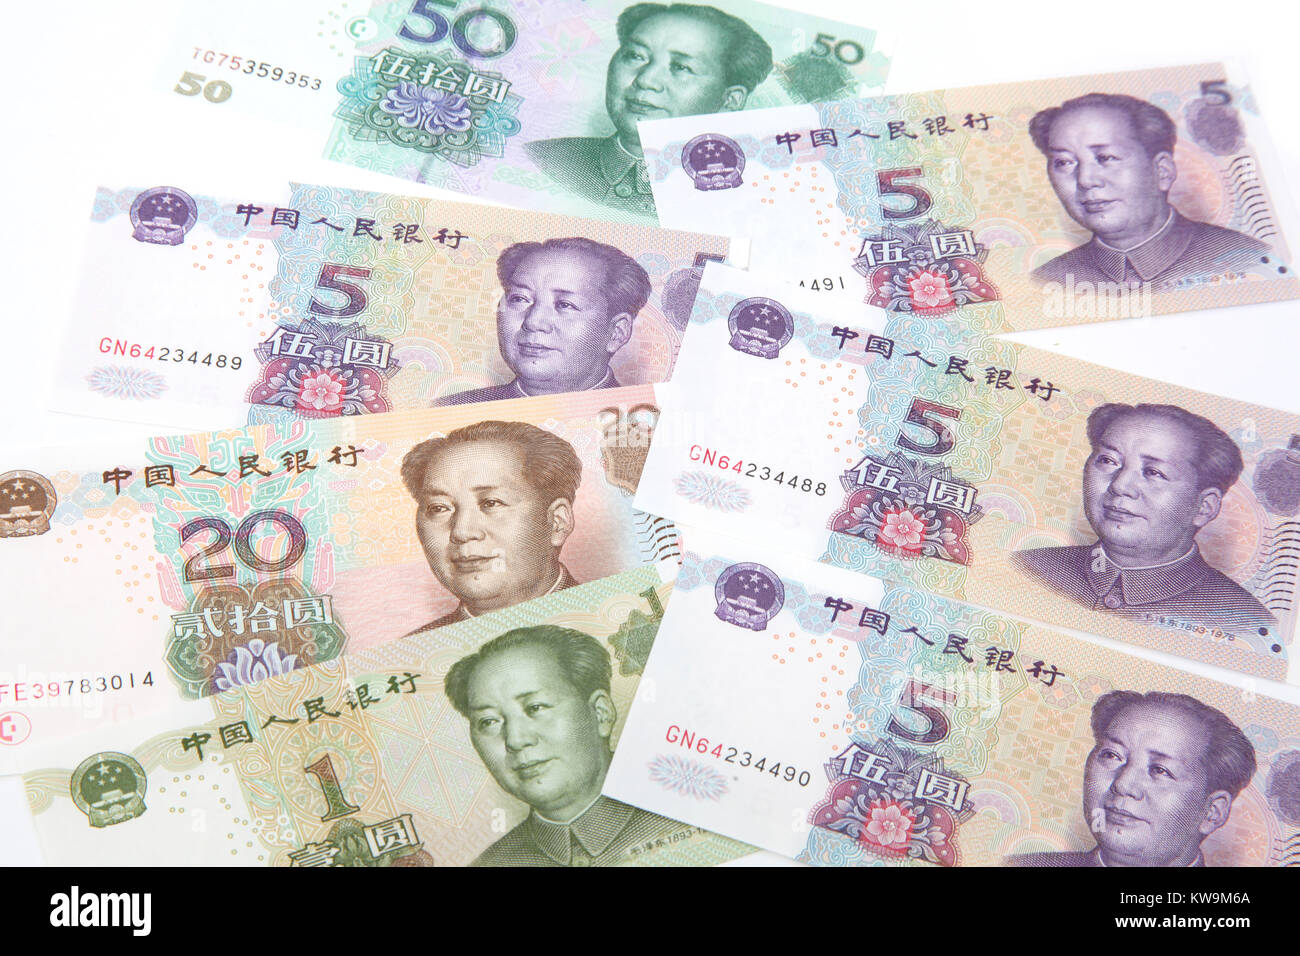 Chinese Bank Notes featuring Mao Zedong - Stock Image